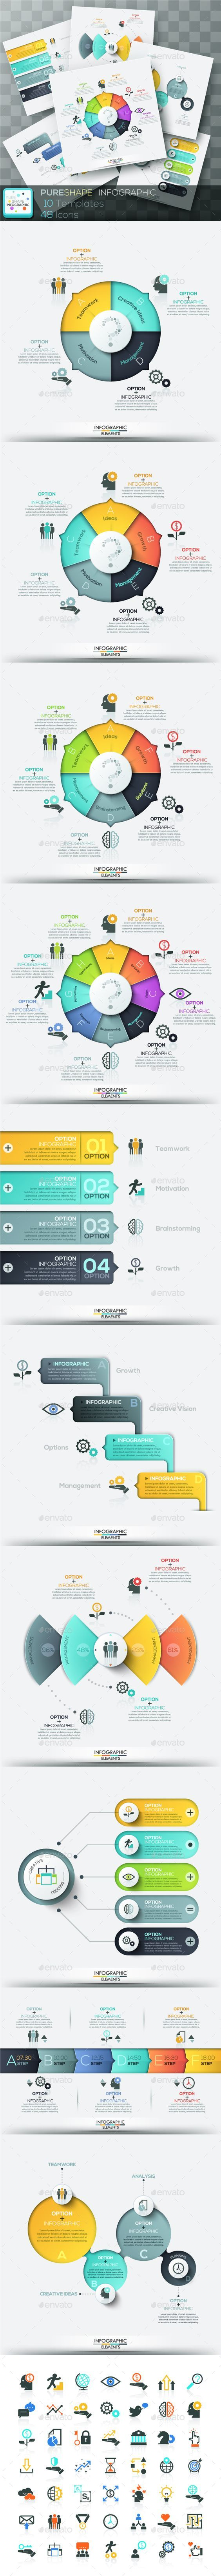 Pure Shape Infographic Templates. Download here: http://graphicriver.net/item/pure-shape-infographic/15818237?ref=ksioks: